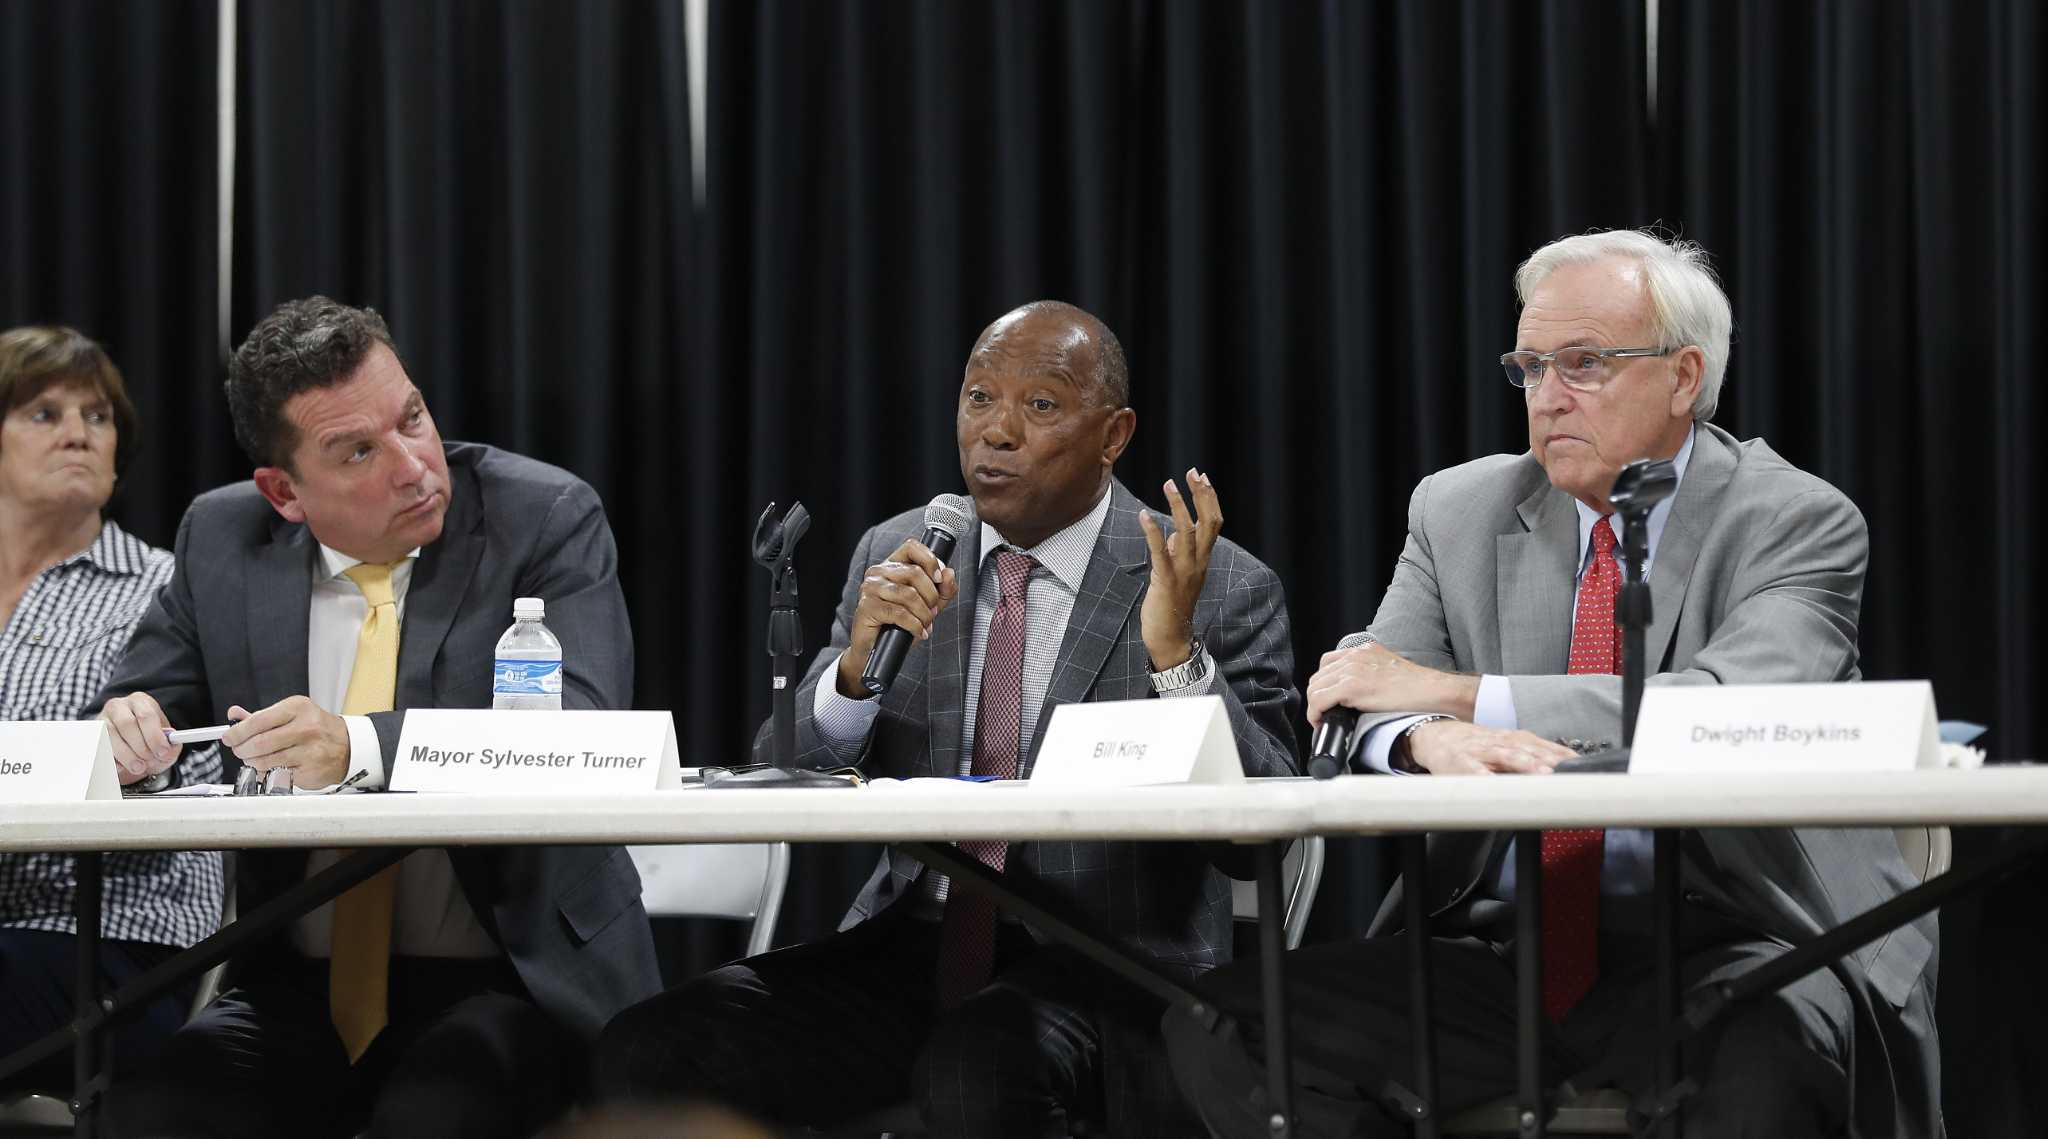 Houston dangerous? Mayor candidates should stick to facts on crime [Editorial]